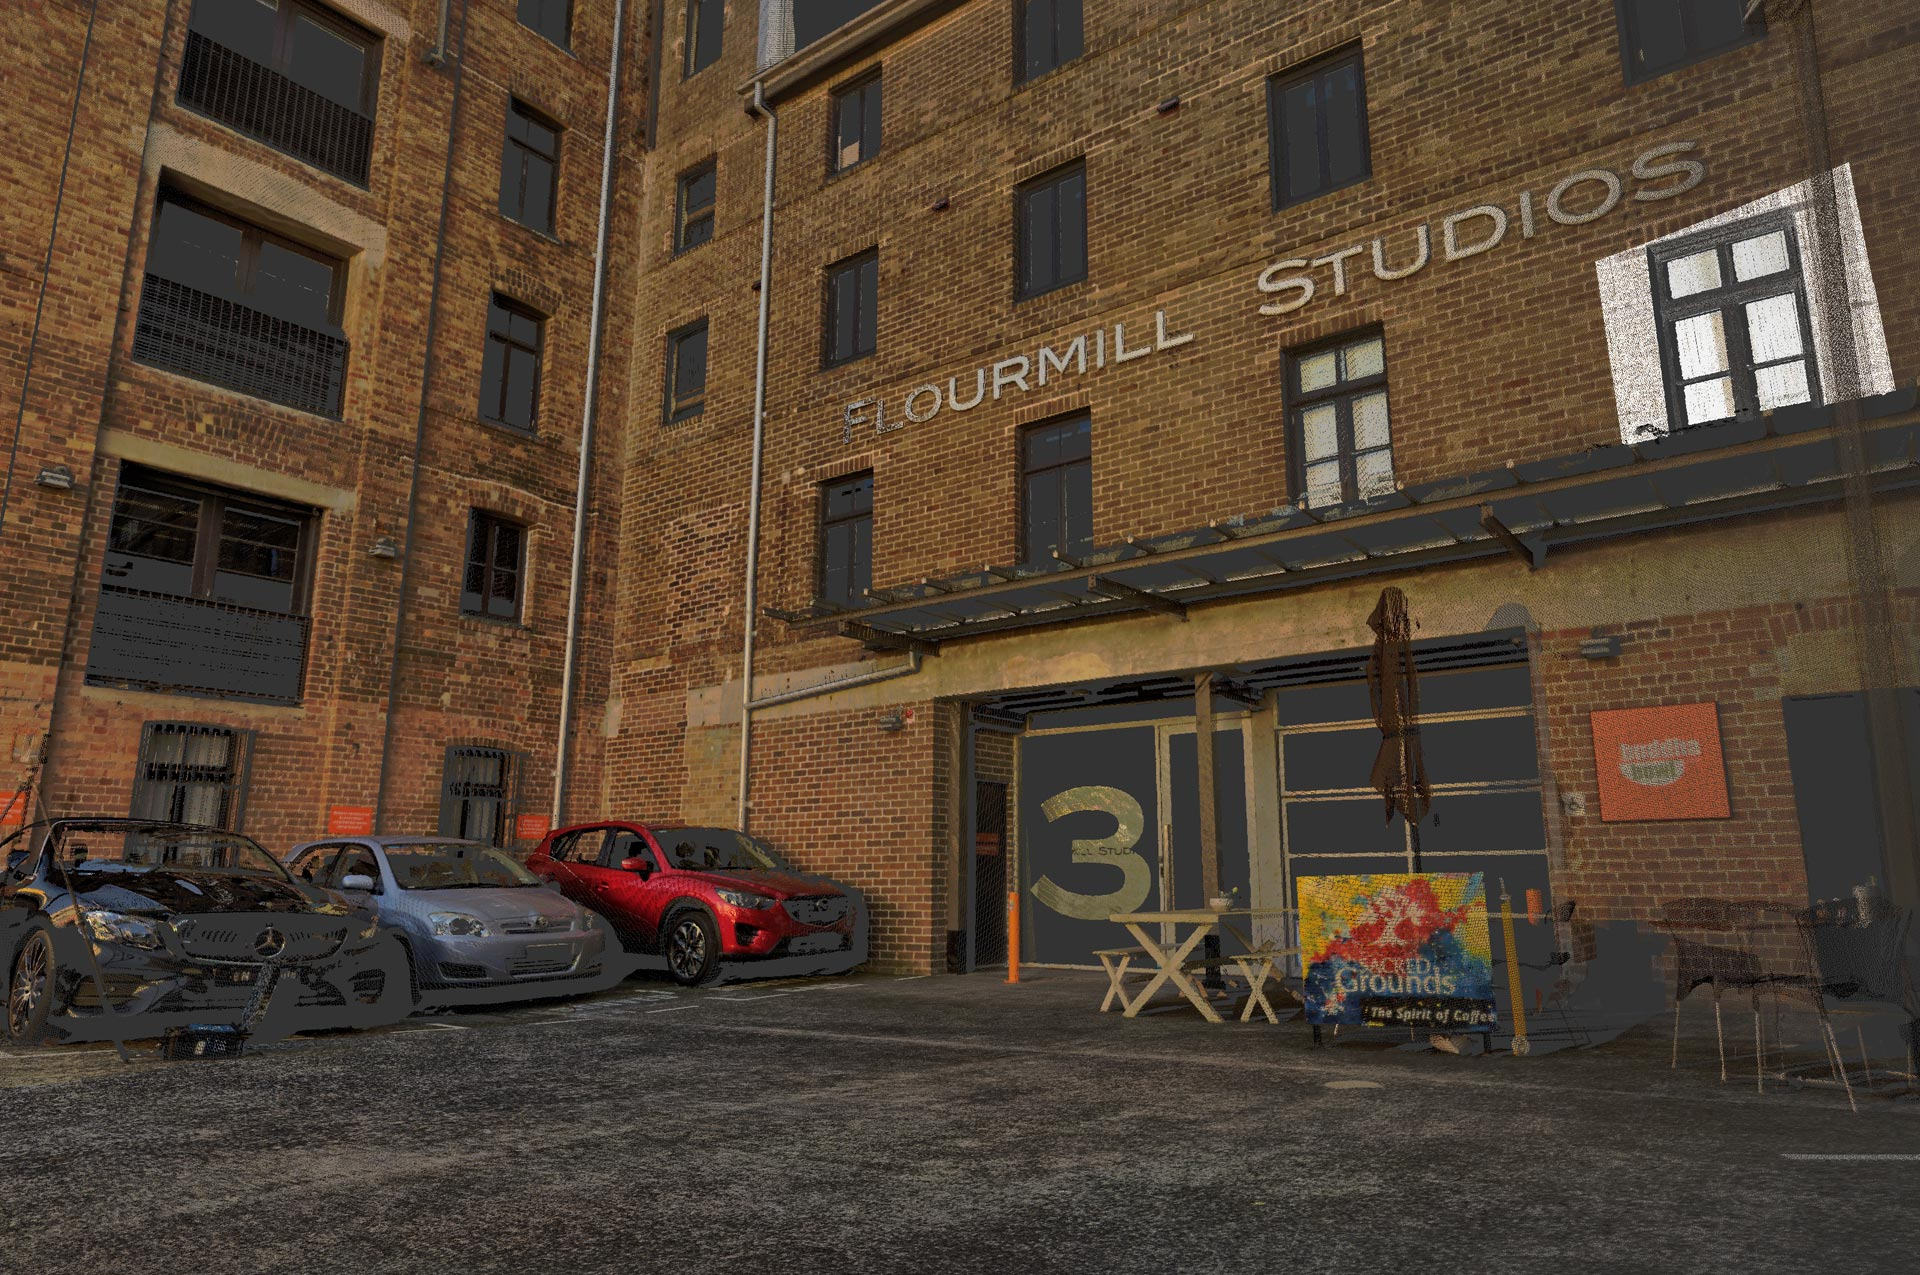 3D laser scanning of the Flourmill Studios in Gladstone Street